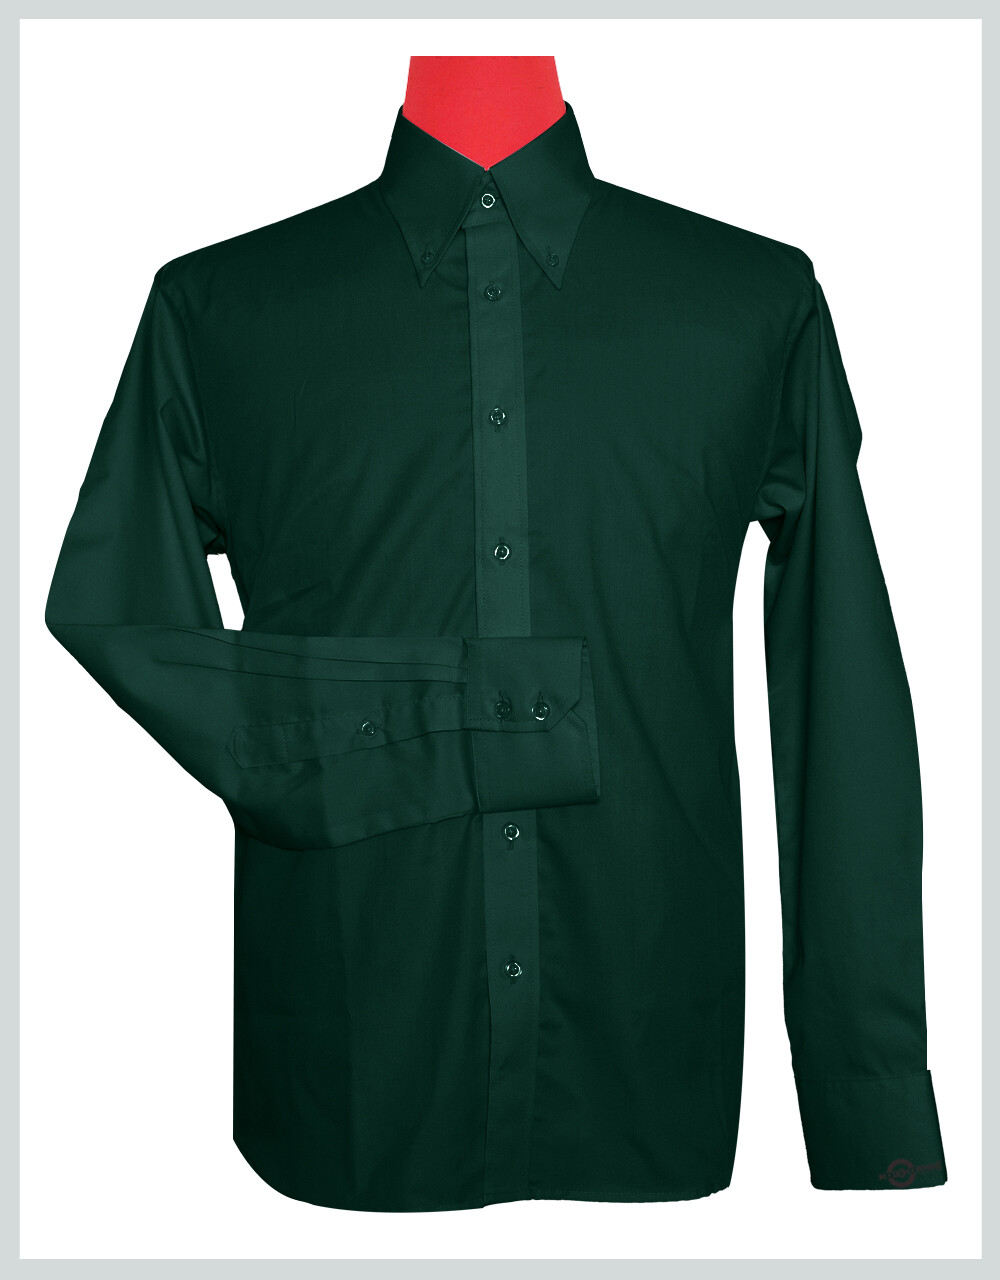 Button-Down Collar Shirt | Dark Green Color Shirt For Man